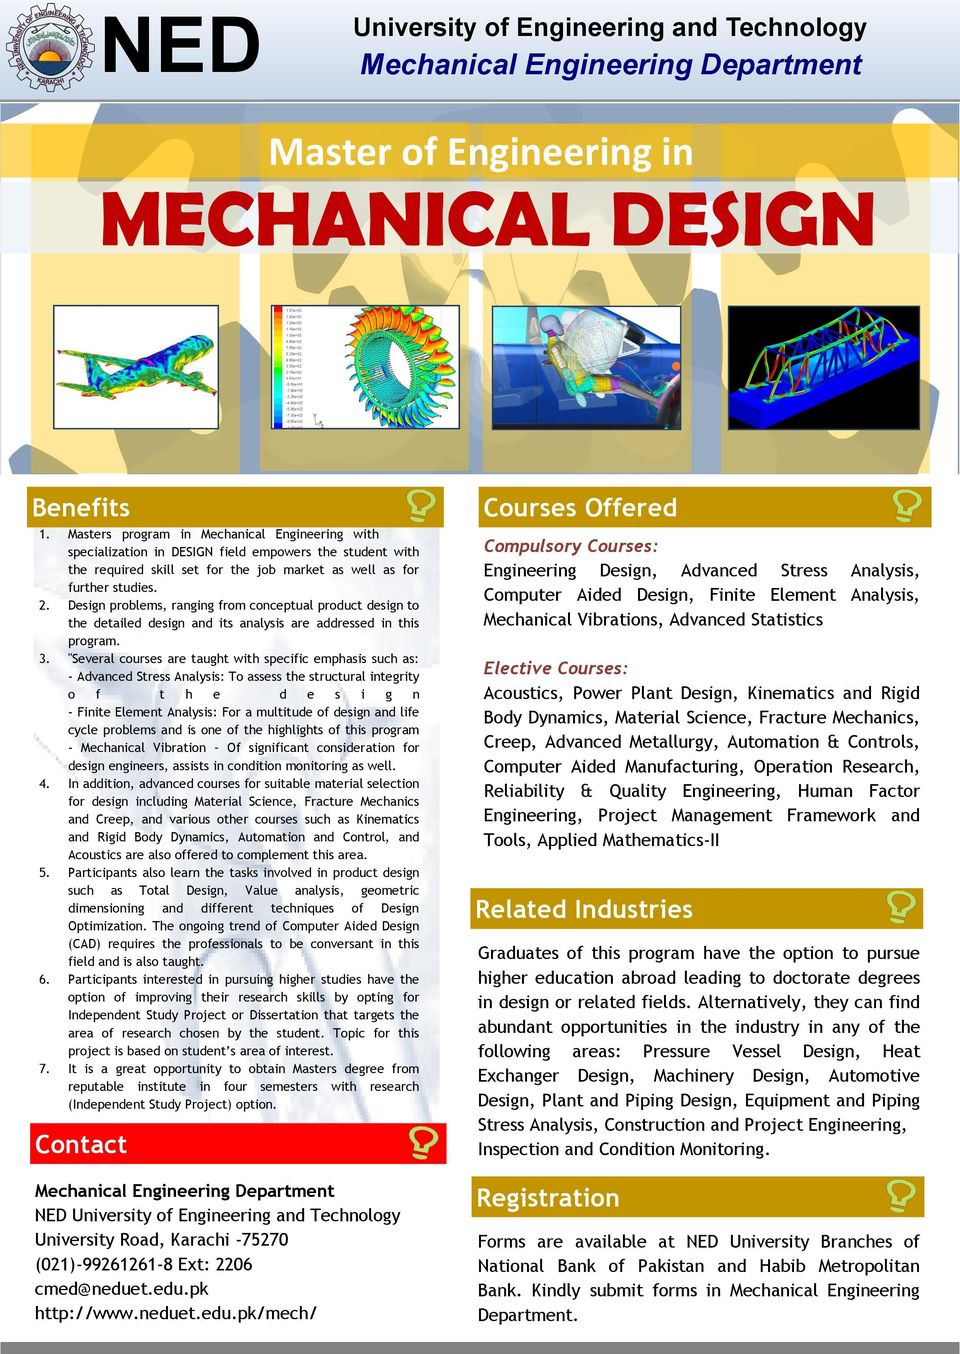 """Several courses are taught with specific emphasis such as: - Advanced Stress Analysis: To assess the structural integrity o f t h e d e s i g n - Finite Element Analysis: For a multitude of design"